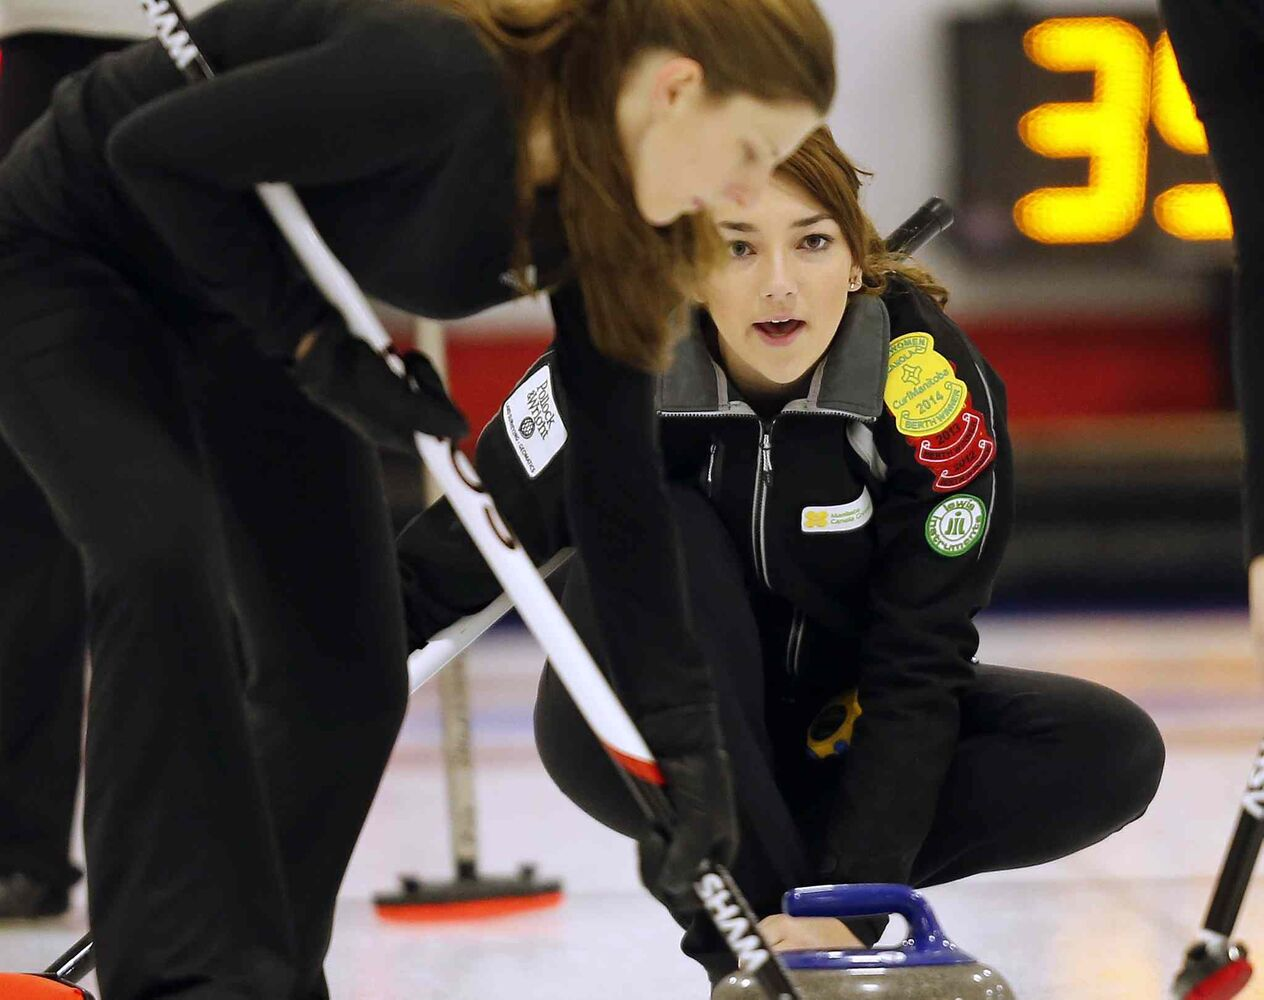 Kristy Watling in a game vs Beth Peterson at the Canola  Junior Provincial Curling Championships at the  Portage Curling Club, Dec. 30 2013. (KEN GIGLIOTTI / WINNIPEG FREE PRESS)